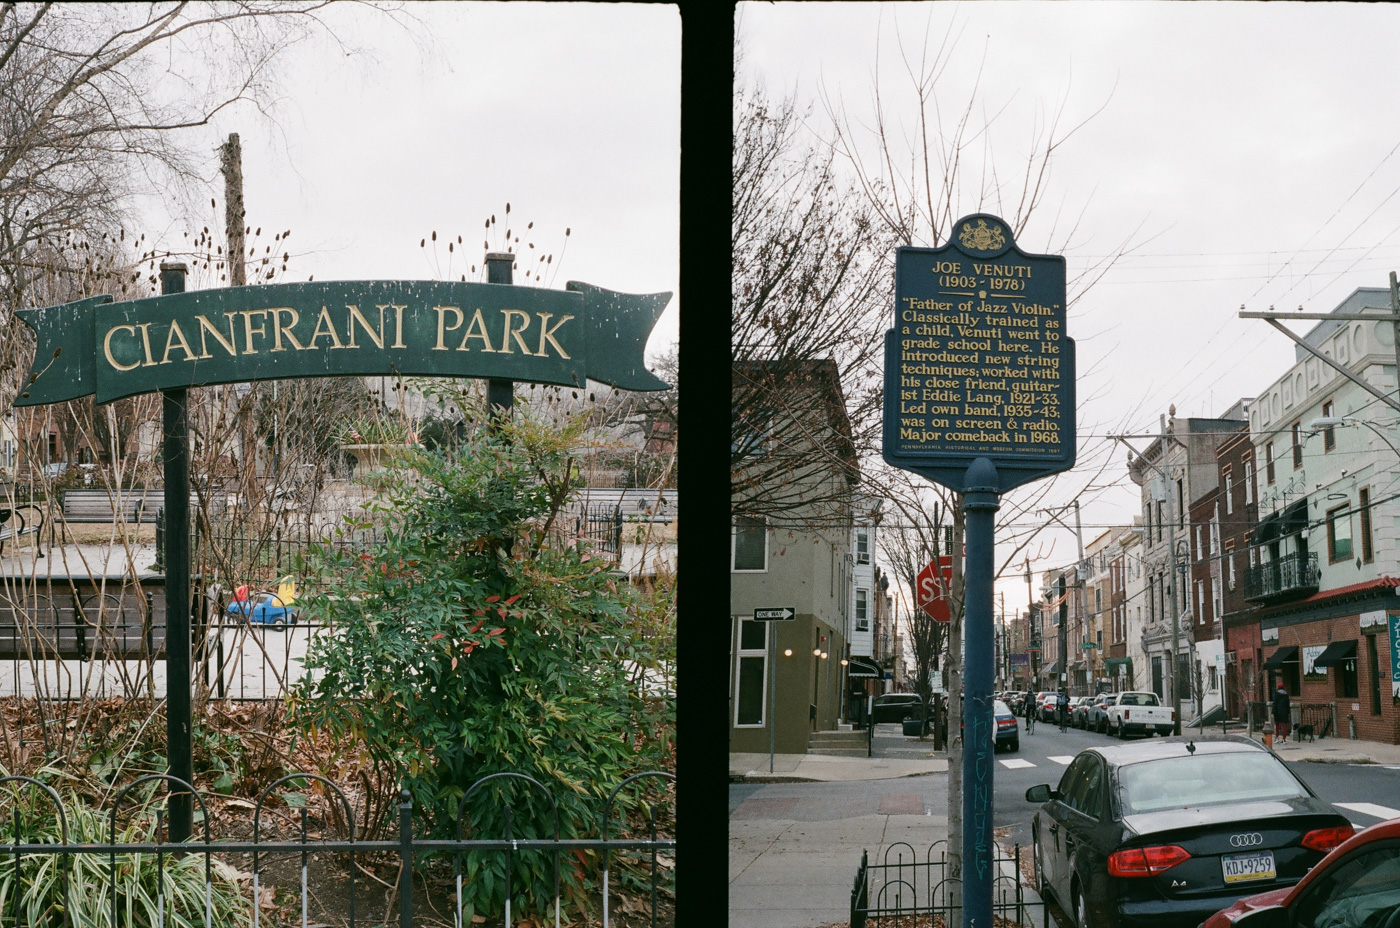 Cianfrani Park and Joe Venuti Historical Marker